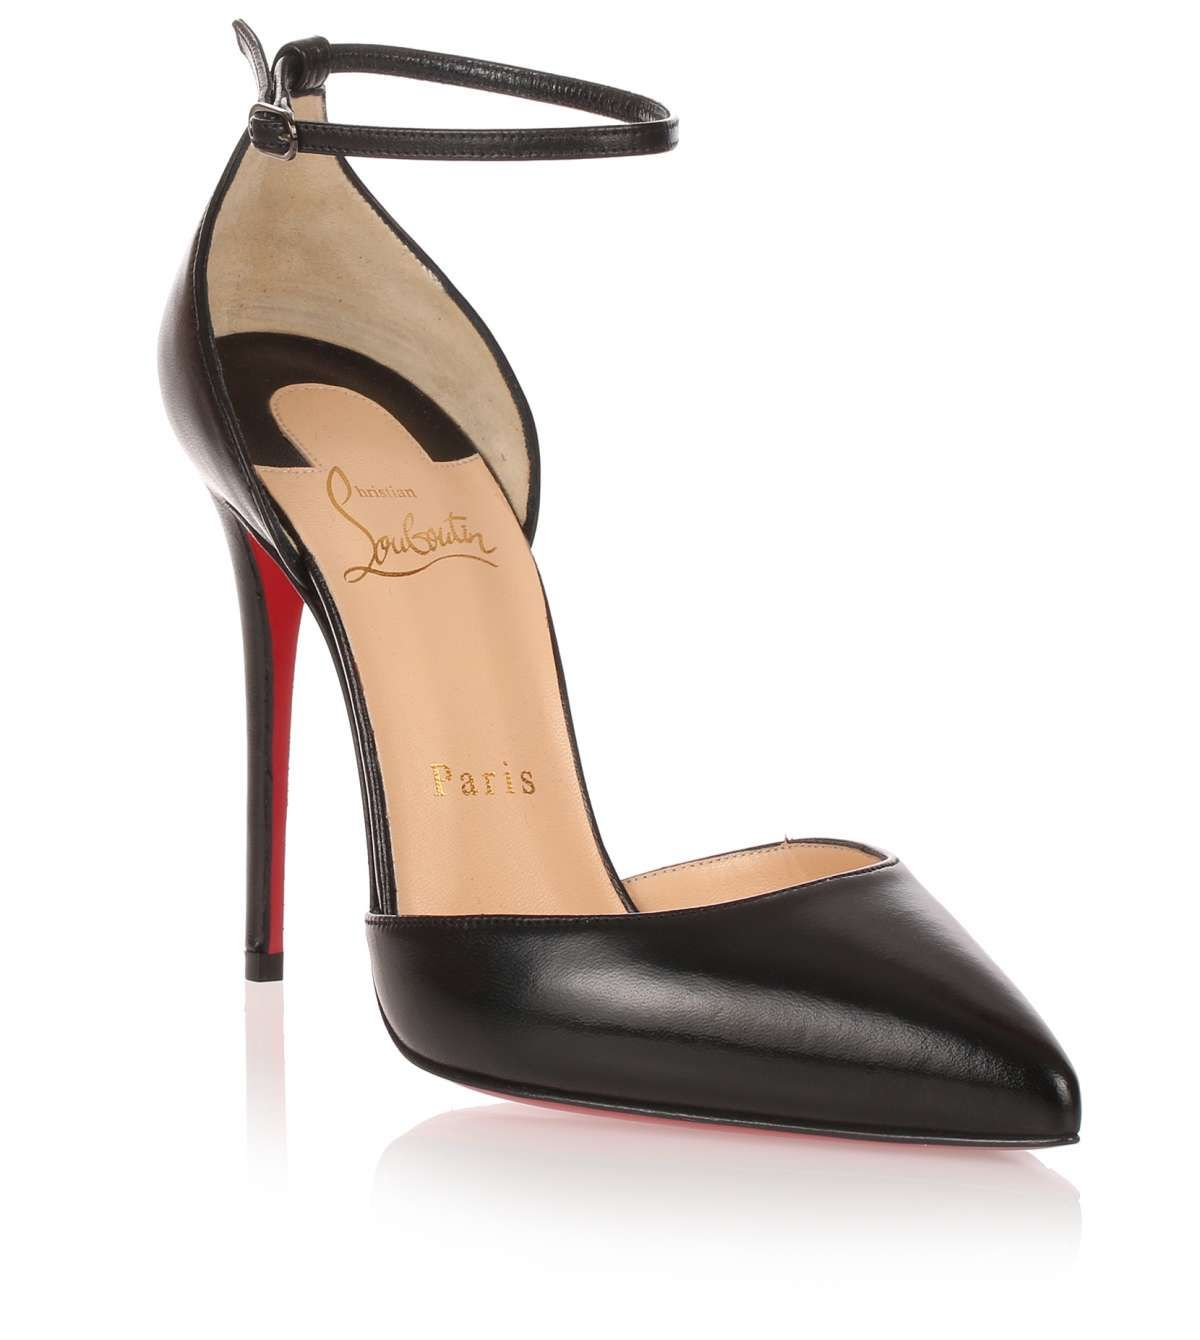 dccdb68c88e Uptown 100 black leather pump in 2019 | high heels | Louboutin shoes ...